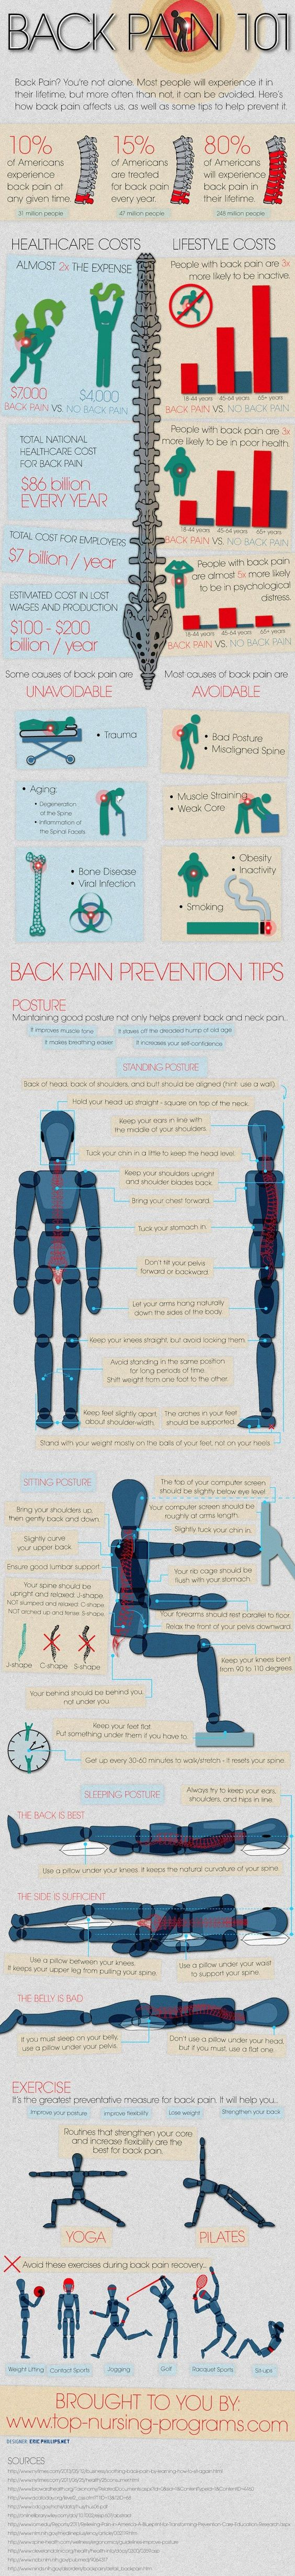 Everything You Need To Know About Back Pain #chiropractic